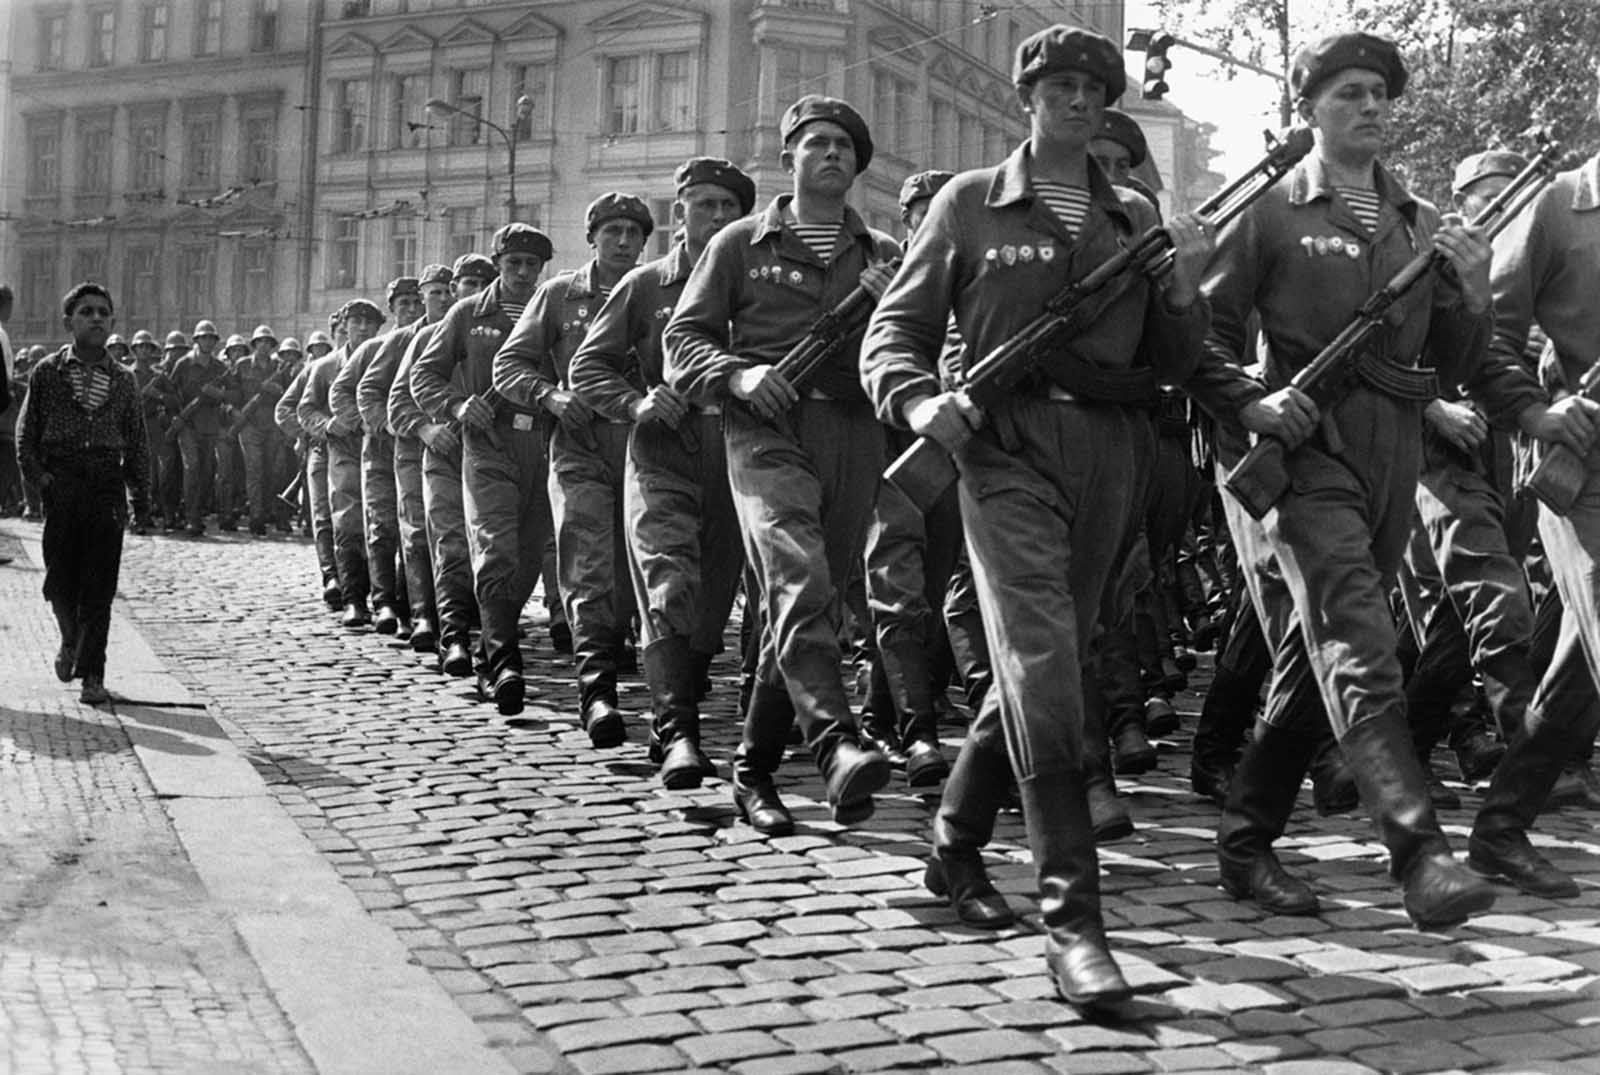 Soviet troops march through Prague in September 1968. After the invasion, a permanent Soviet presence was established in Czechoslovakia to prevent further reforms.